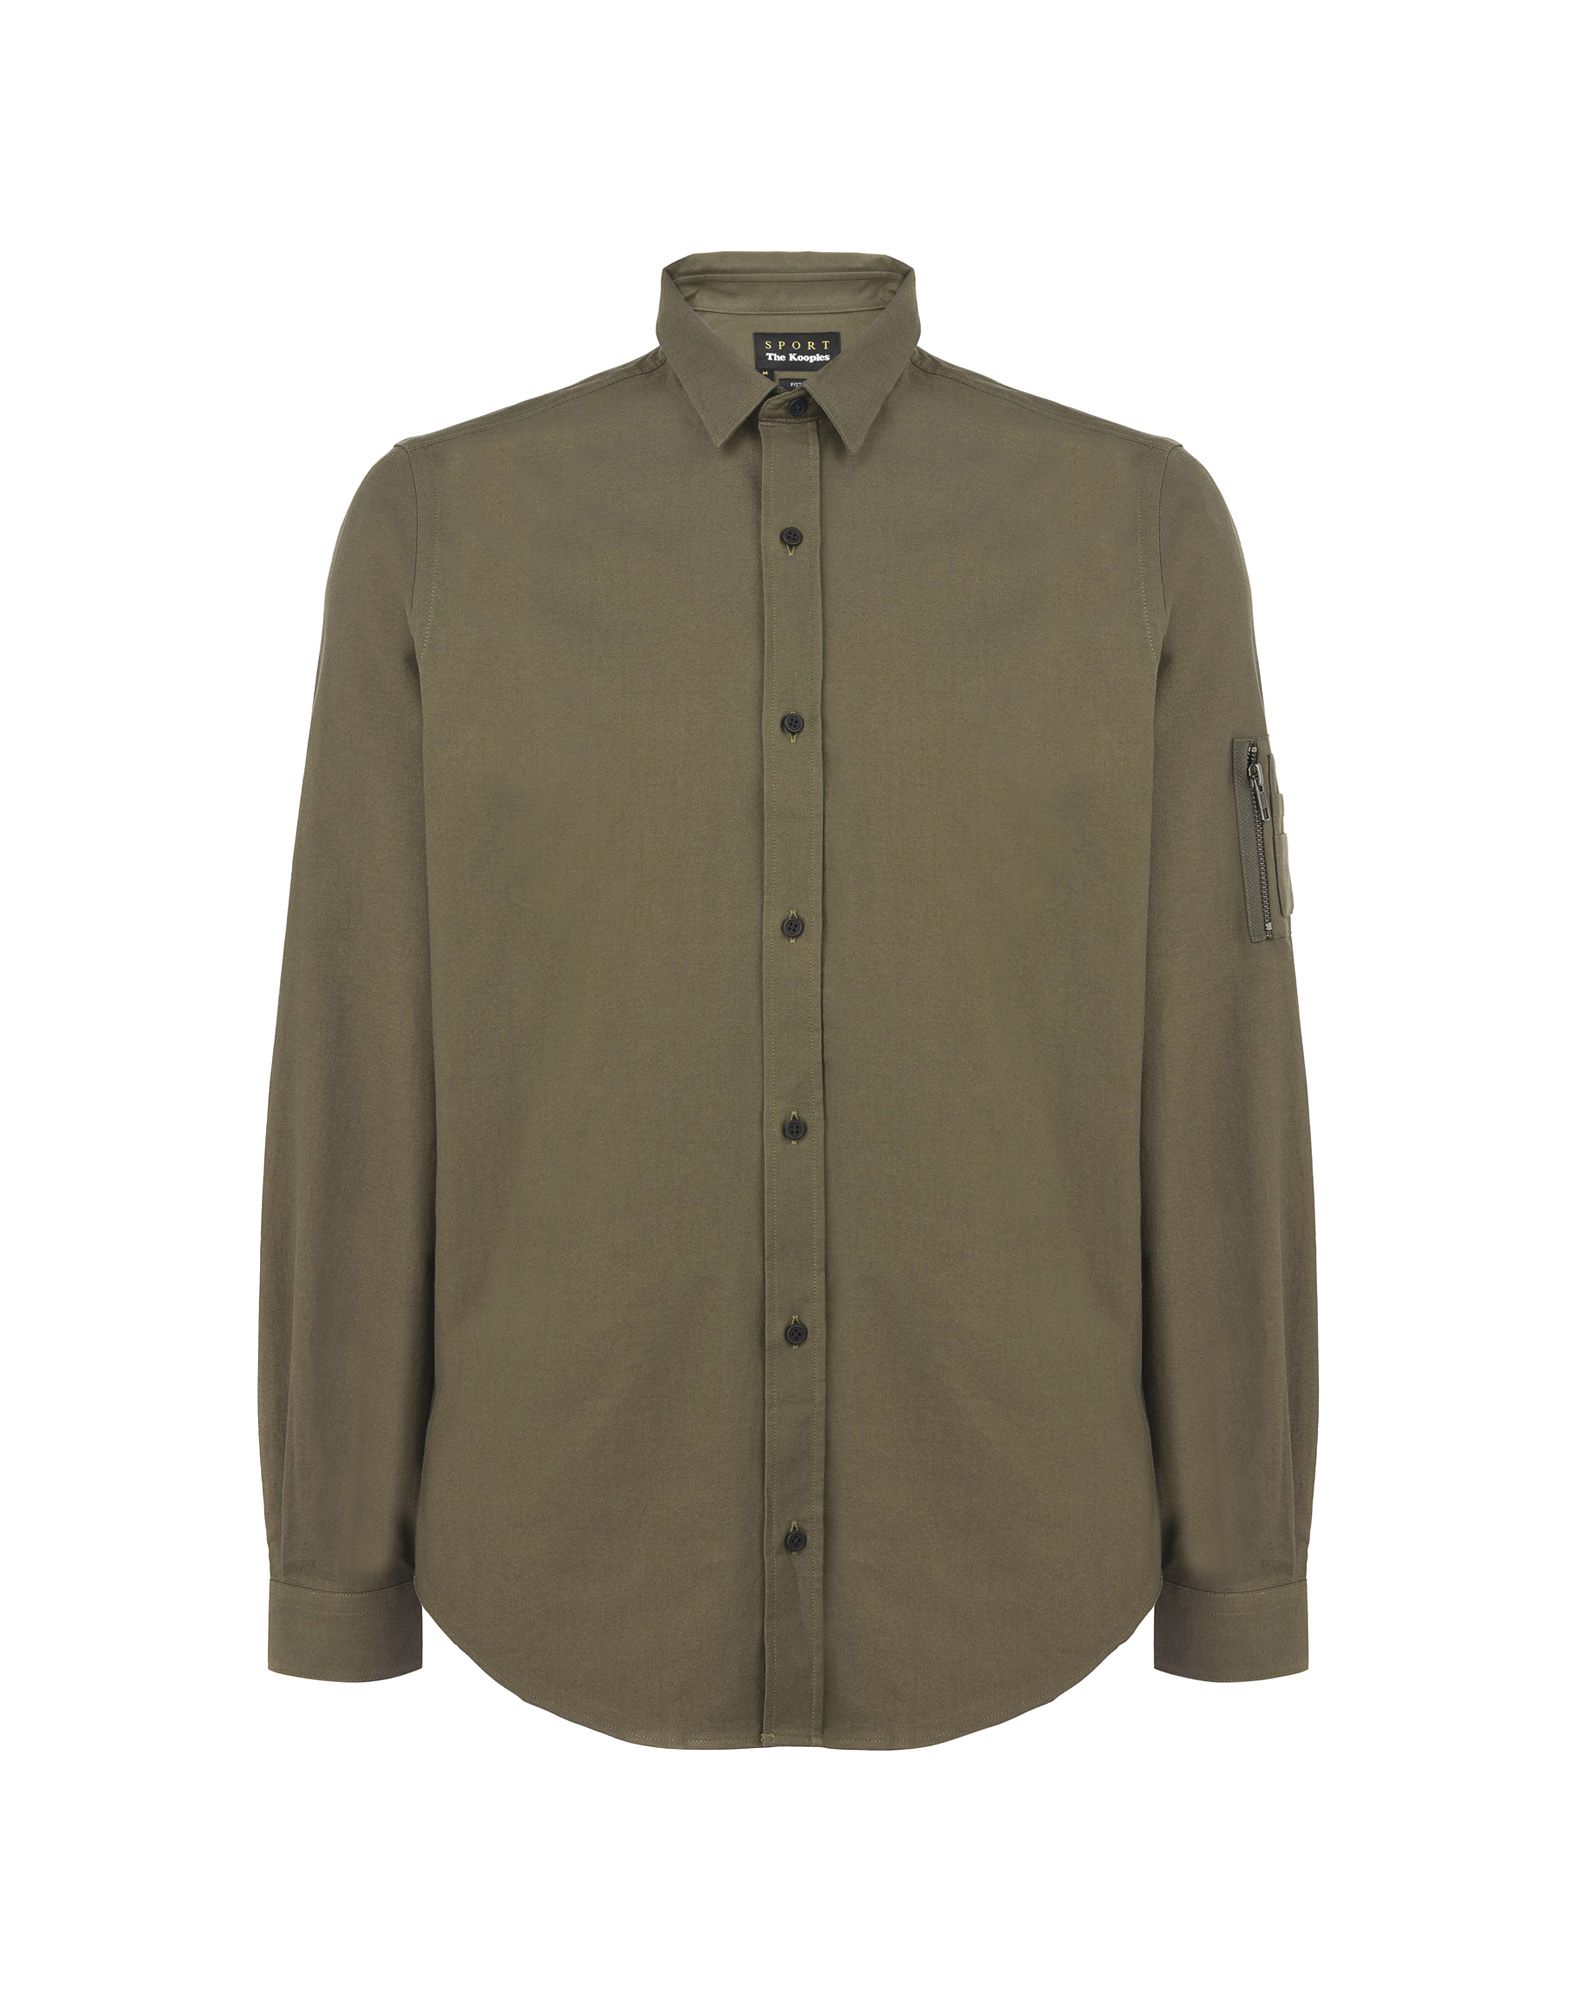 Camicia Tinta Unita The Kooples Sport Shirt With A Classic Collar And Chest Pockets - Uomo - Acquista online su